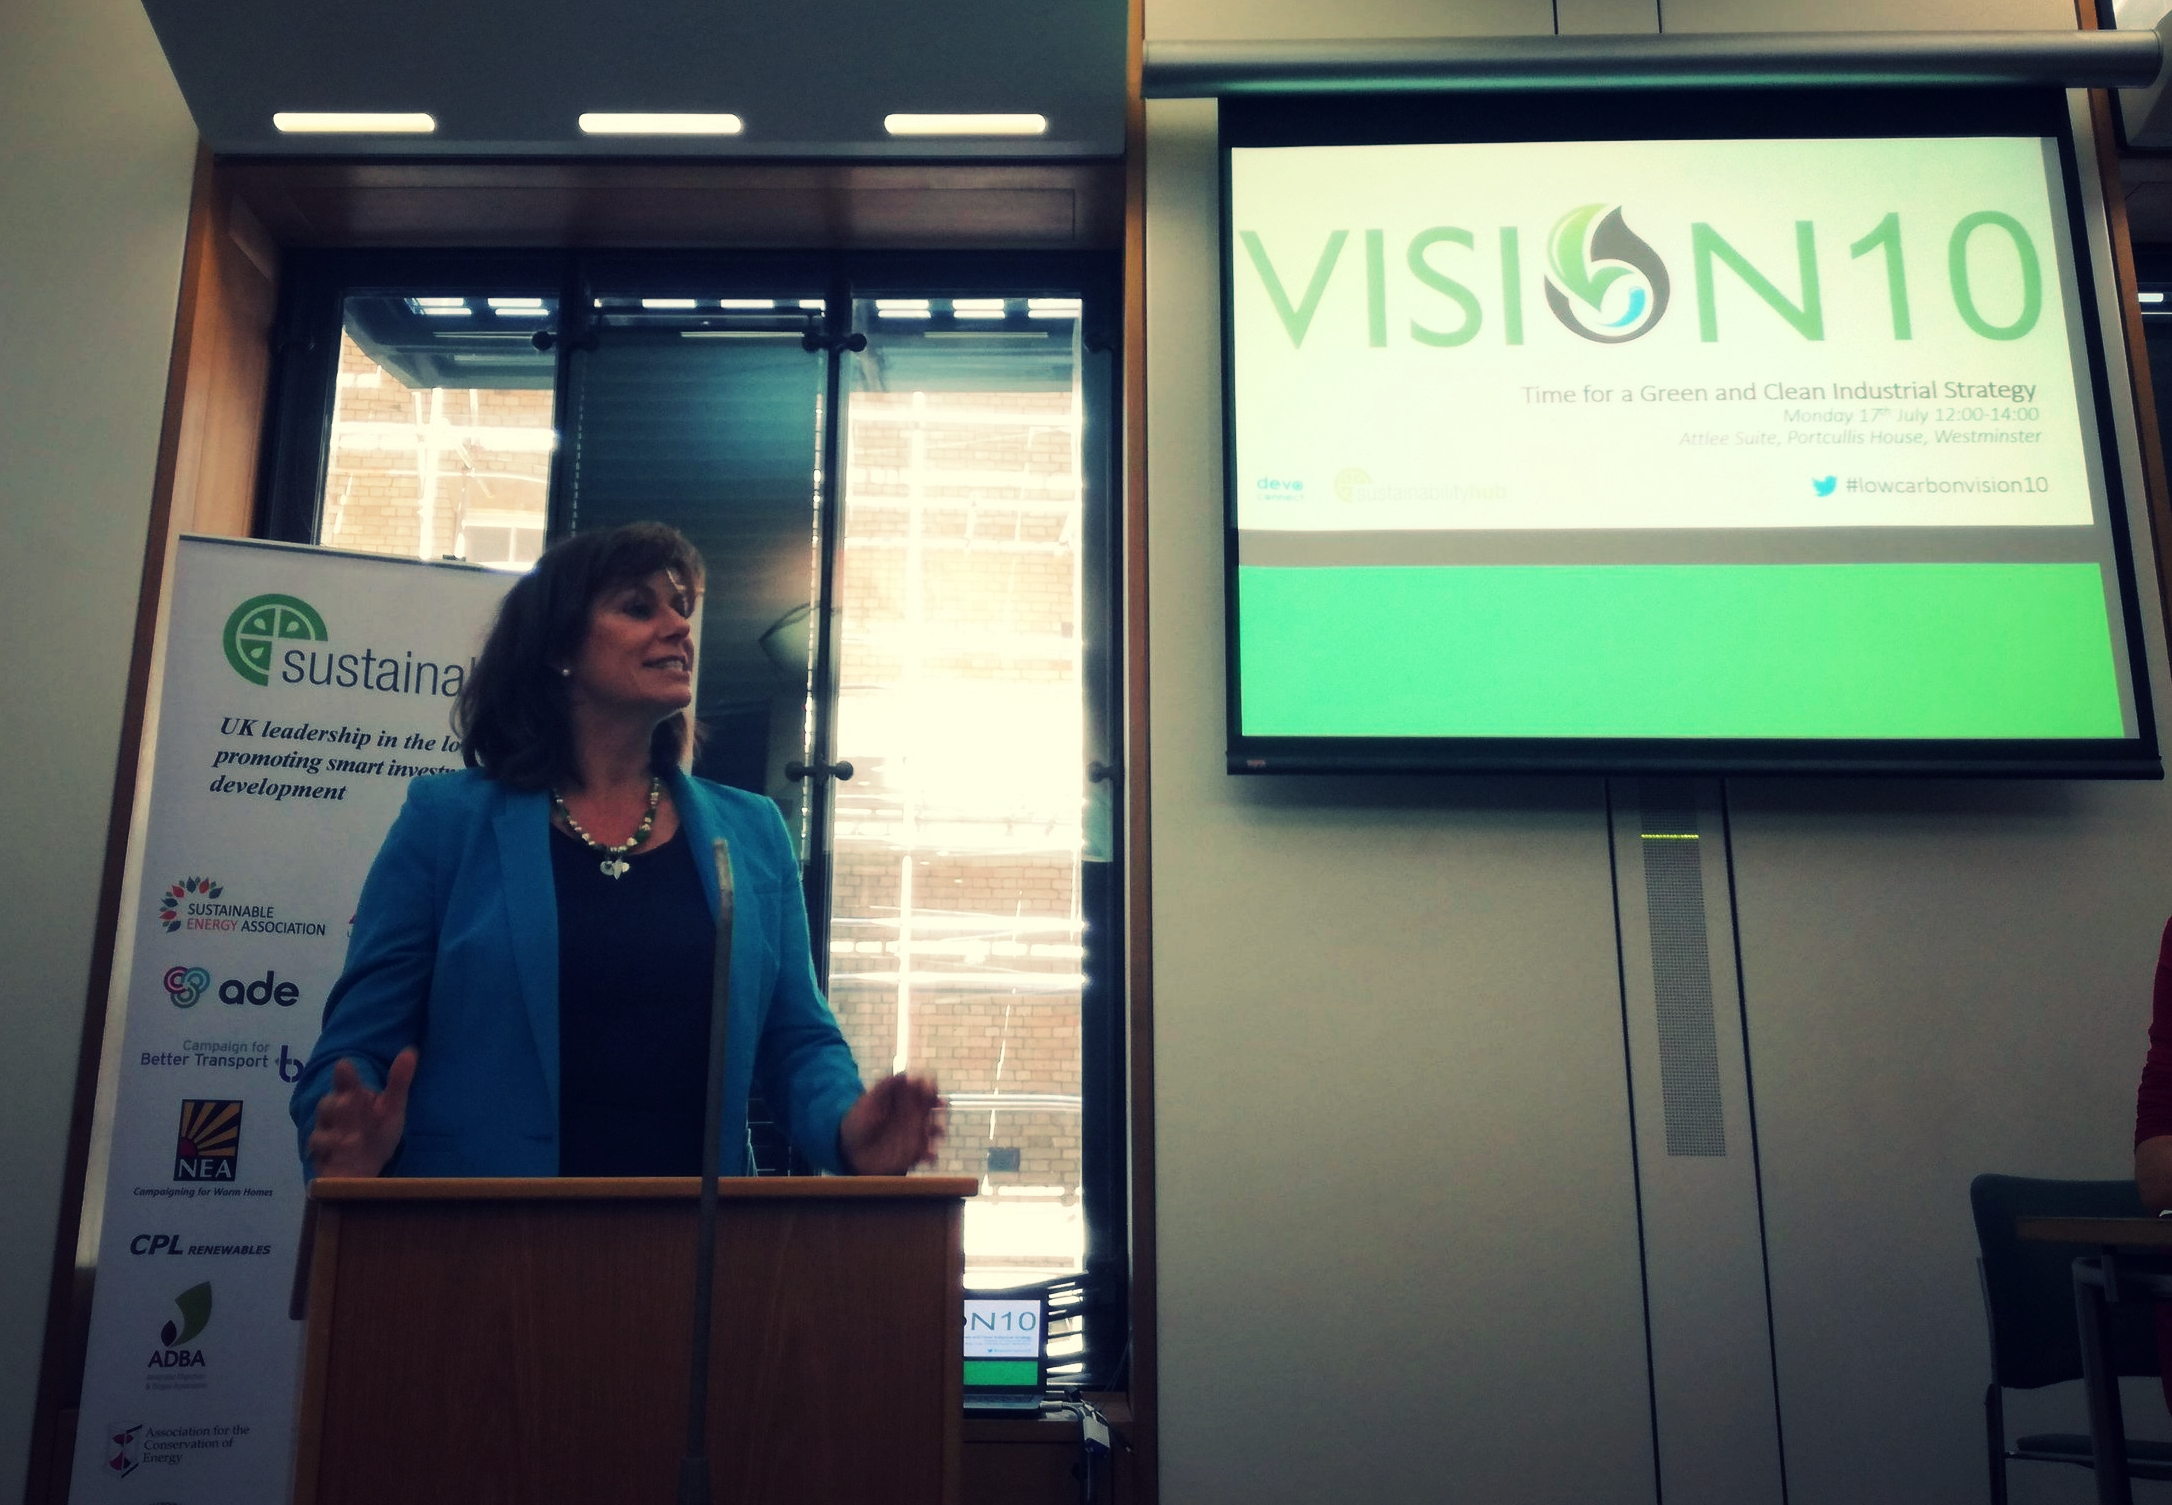 Hope for the Future saw Claire Perry MP, Minister for Climate Change and Industry, give a talk at the launch of Vision10.